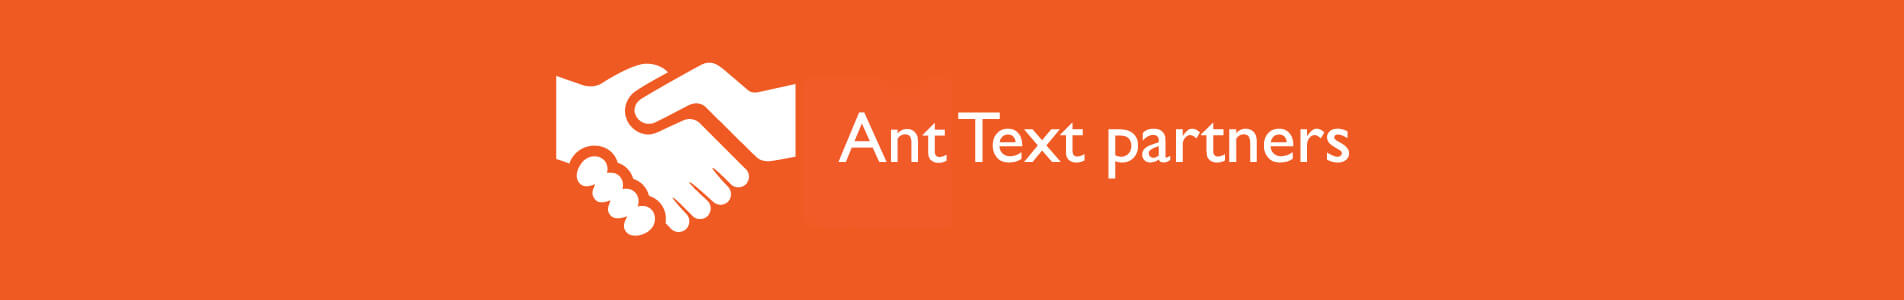 Header Ant Text partners